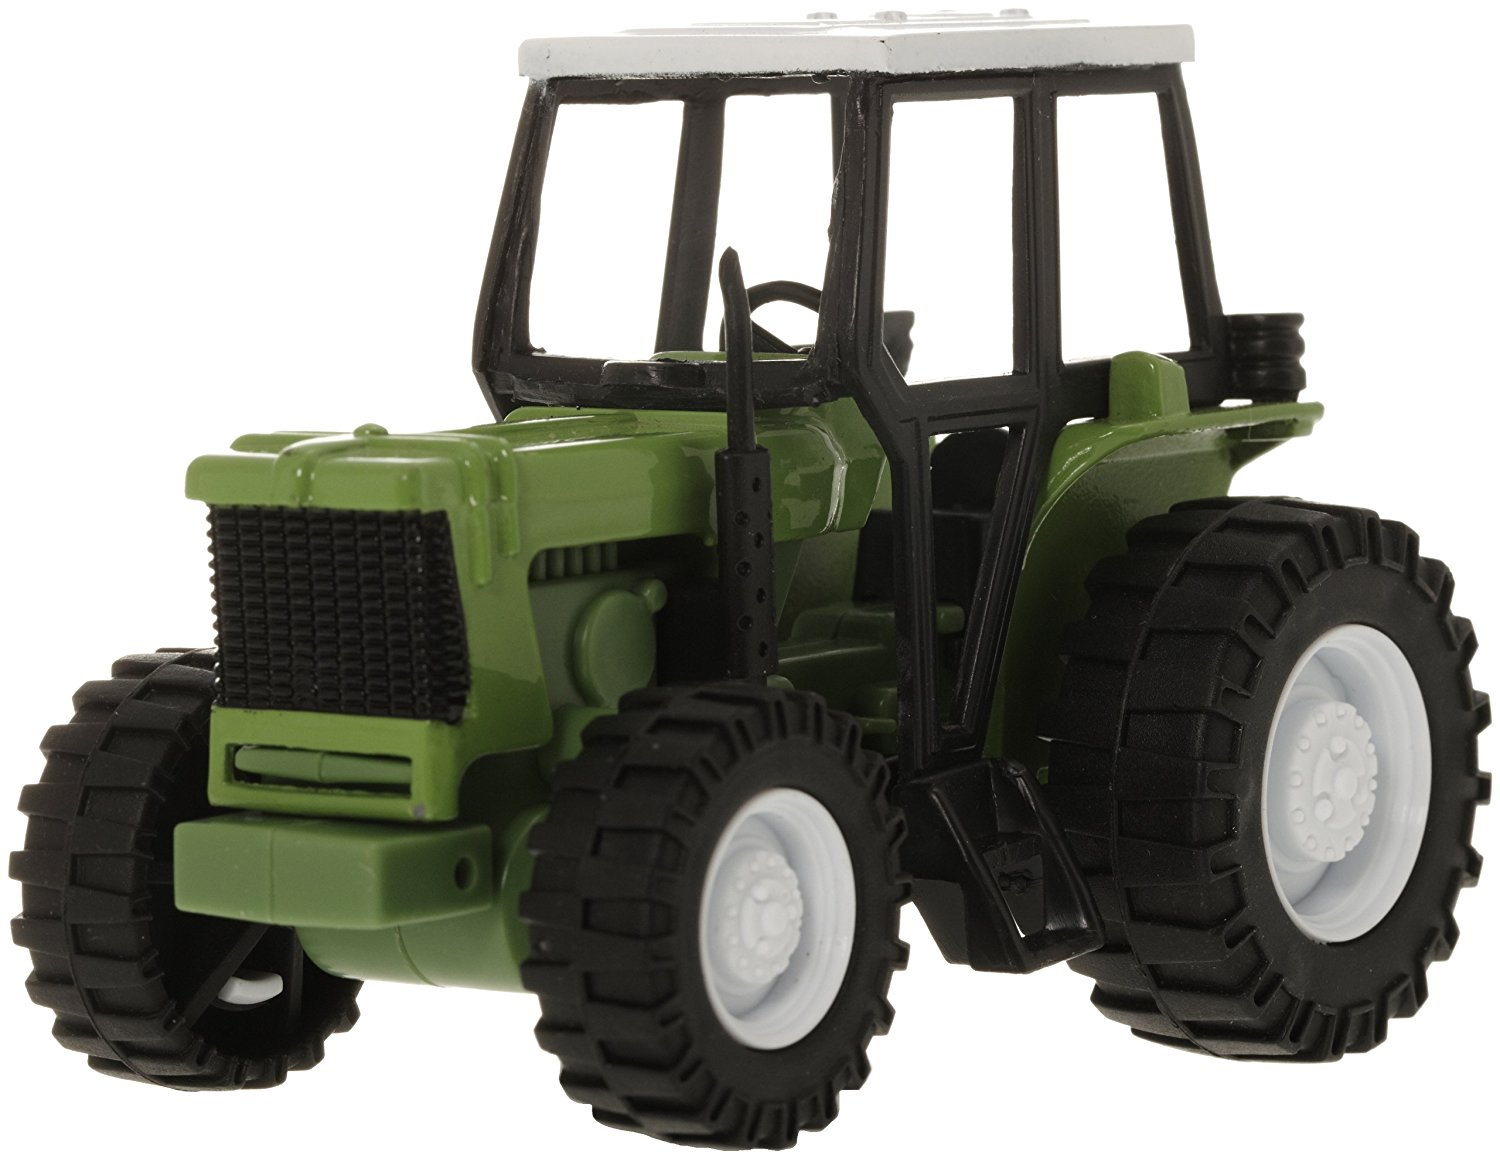 Blue Die-Cast Farm Tractor, 1:32 Scale, Die-Cast Tractor By New Ray Toys by